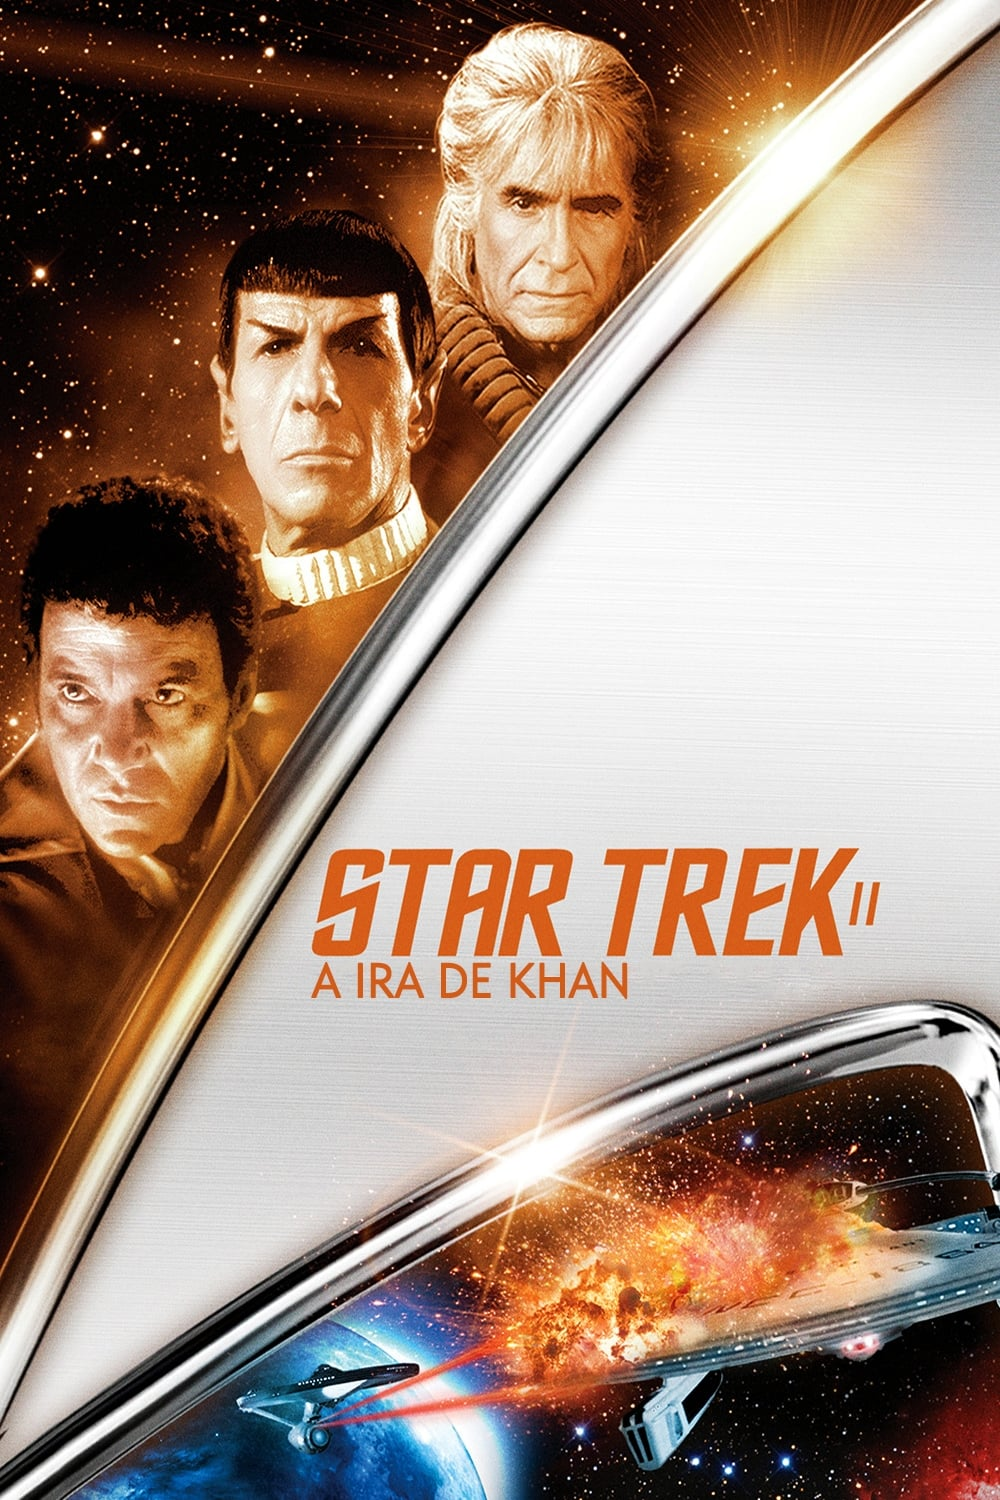 a review of the star trek movie the wrath of khan Film review: star trek ii: the wrath of khan of how great and how fun this movie is ricardo montalbán as khan noonien singh is film review: star trek.